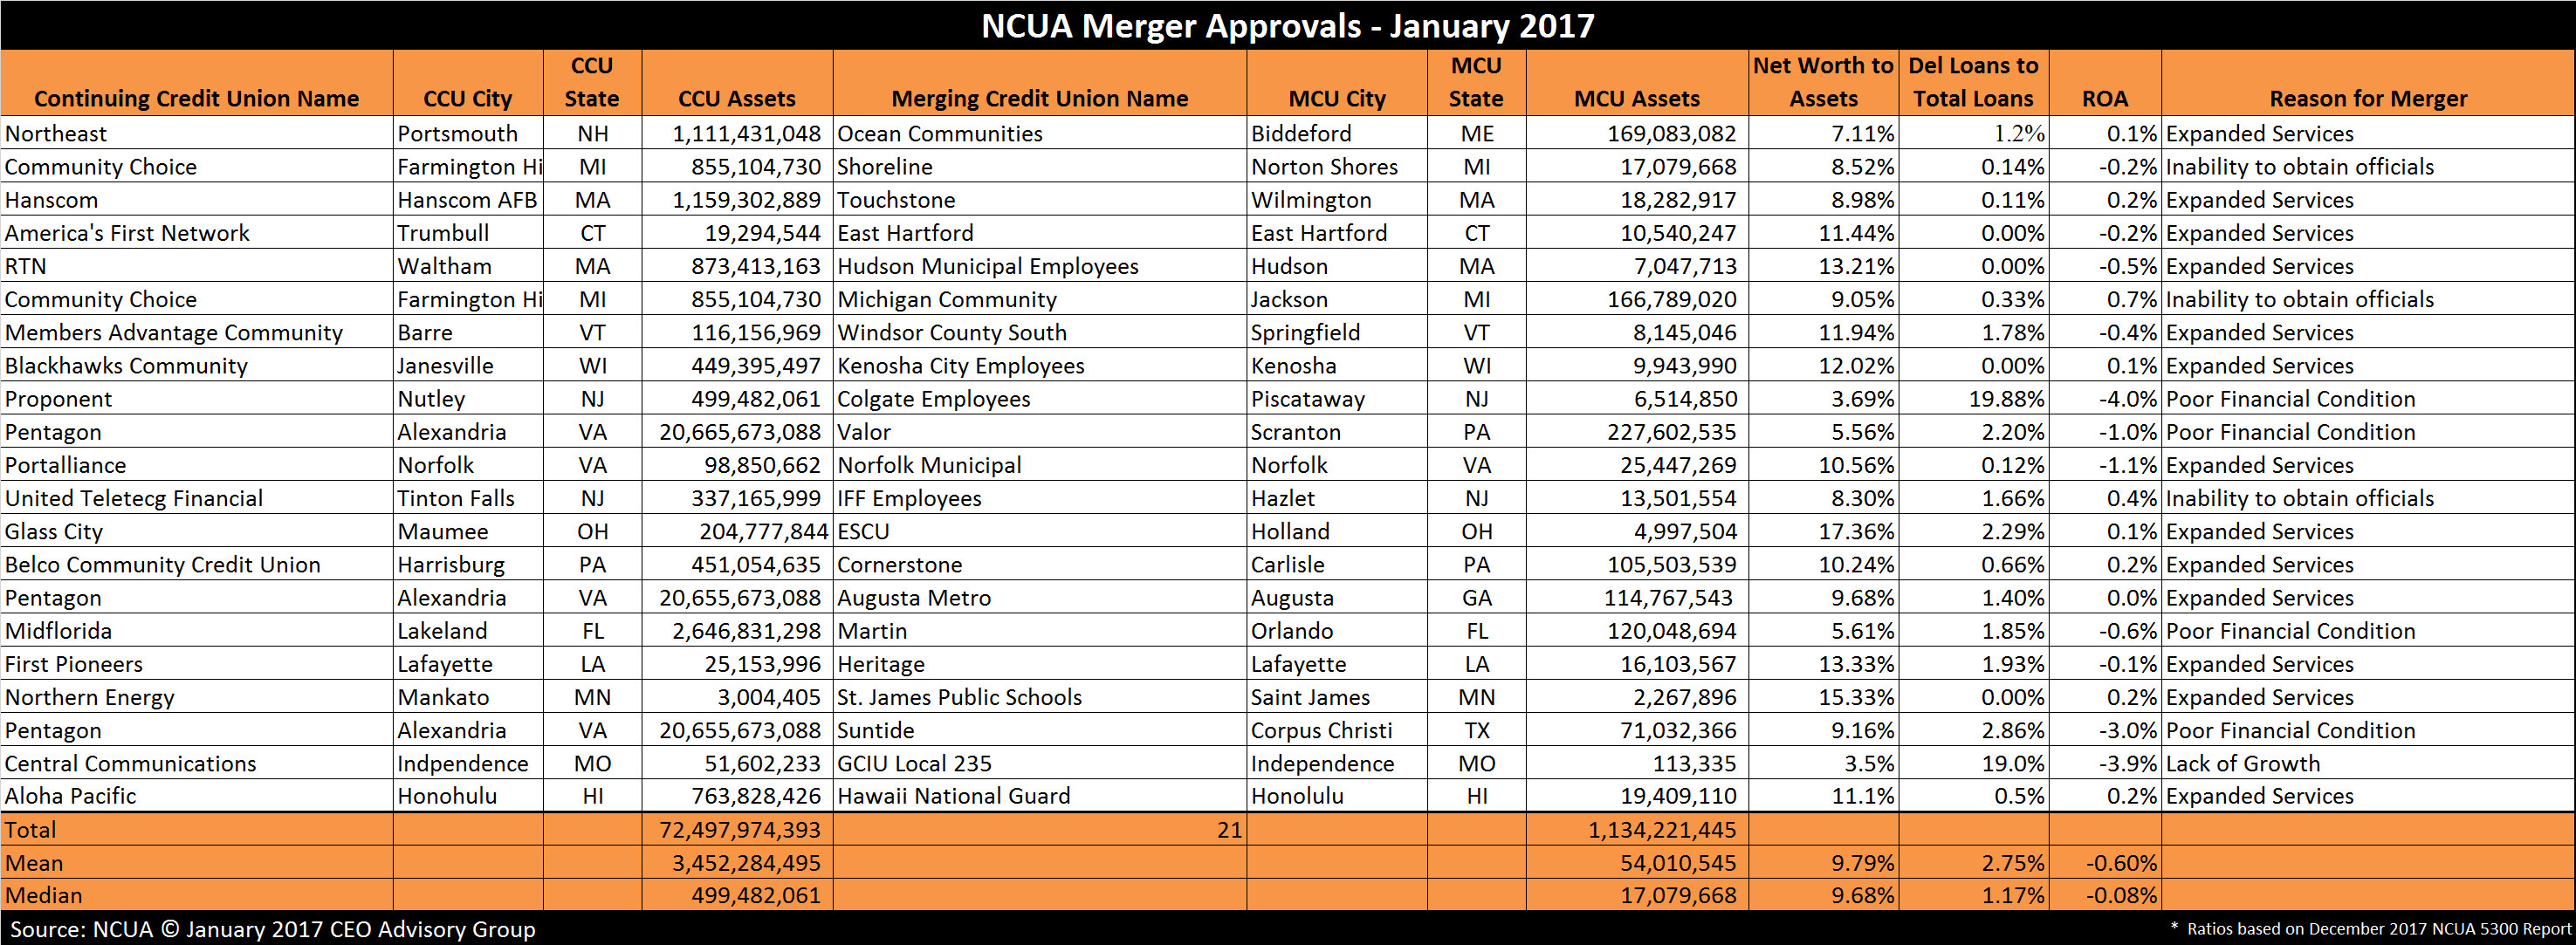 Credit Union Mergers - January 2017